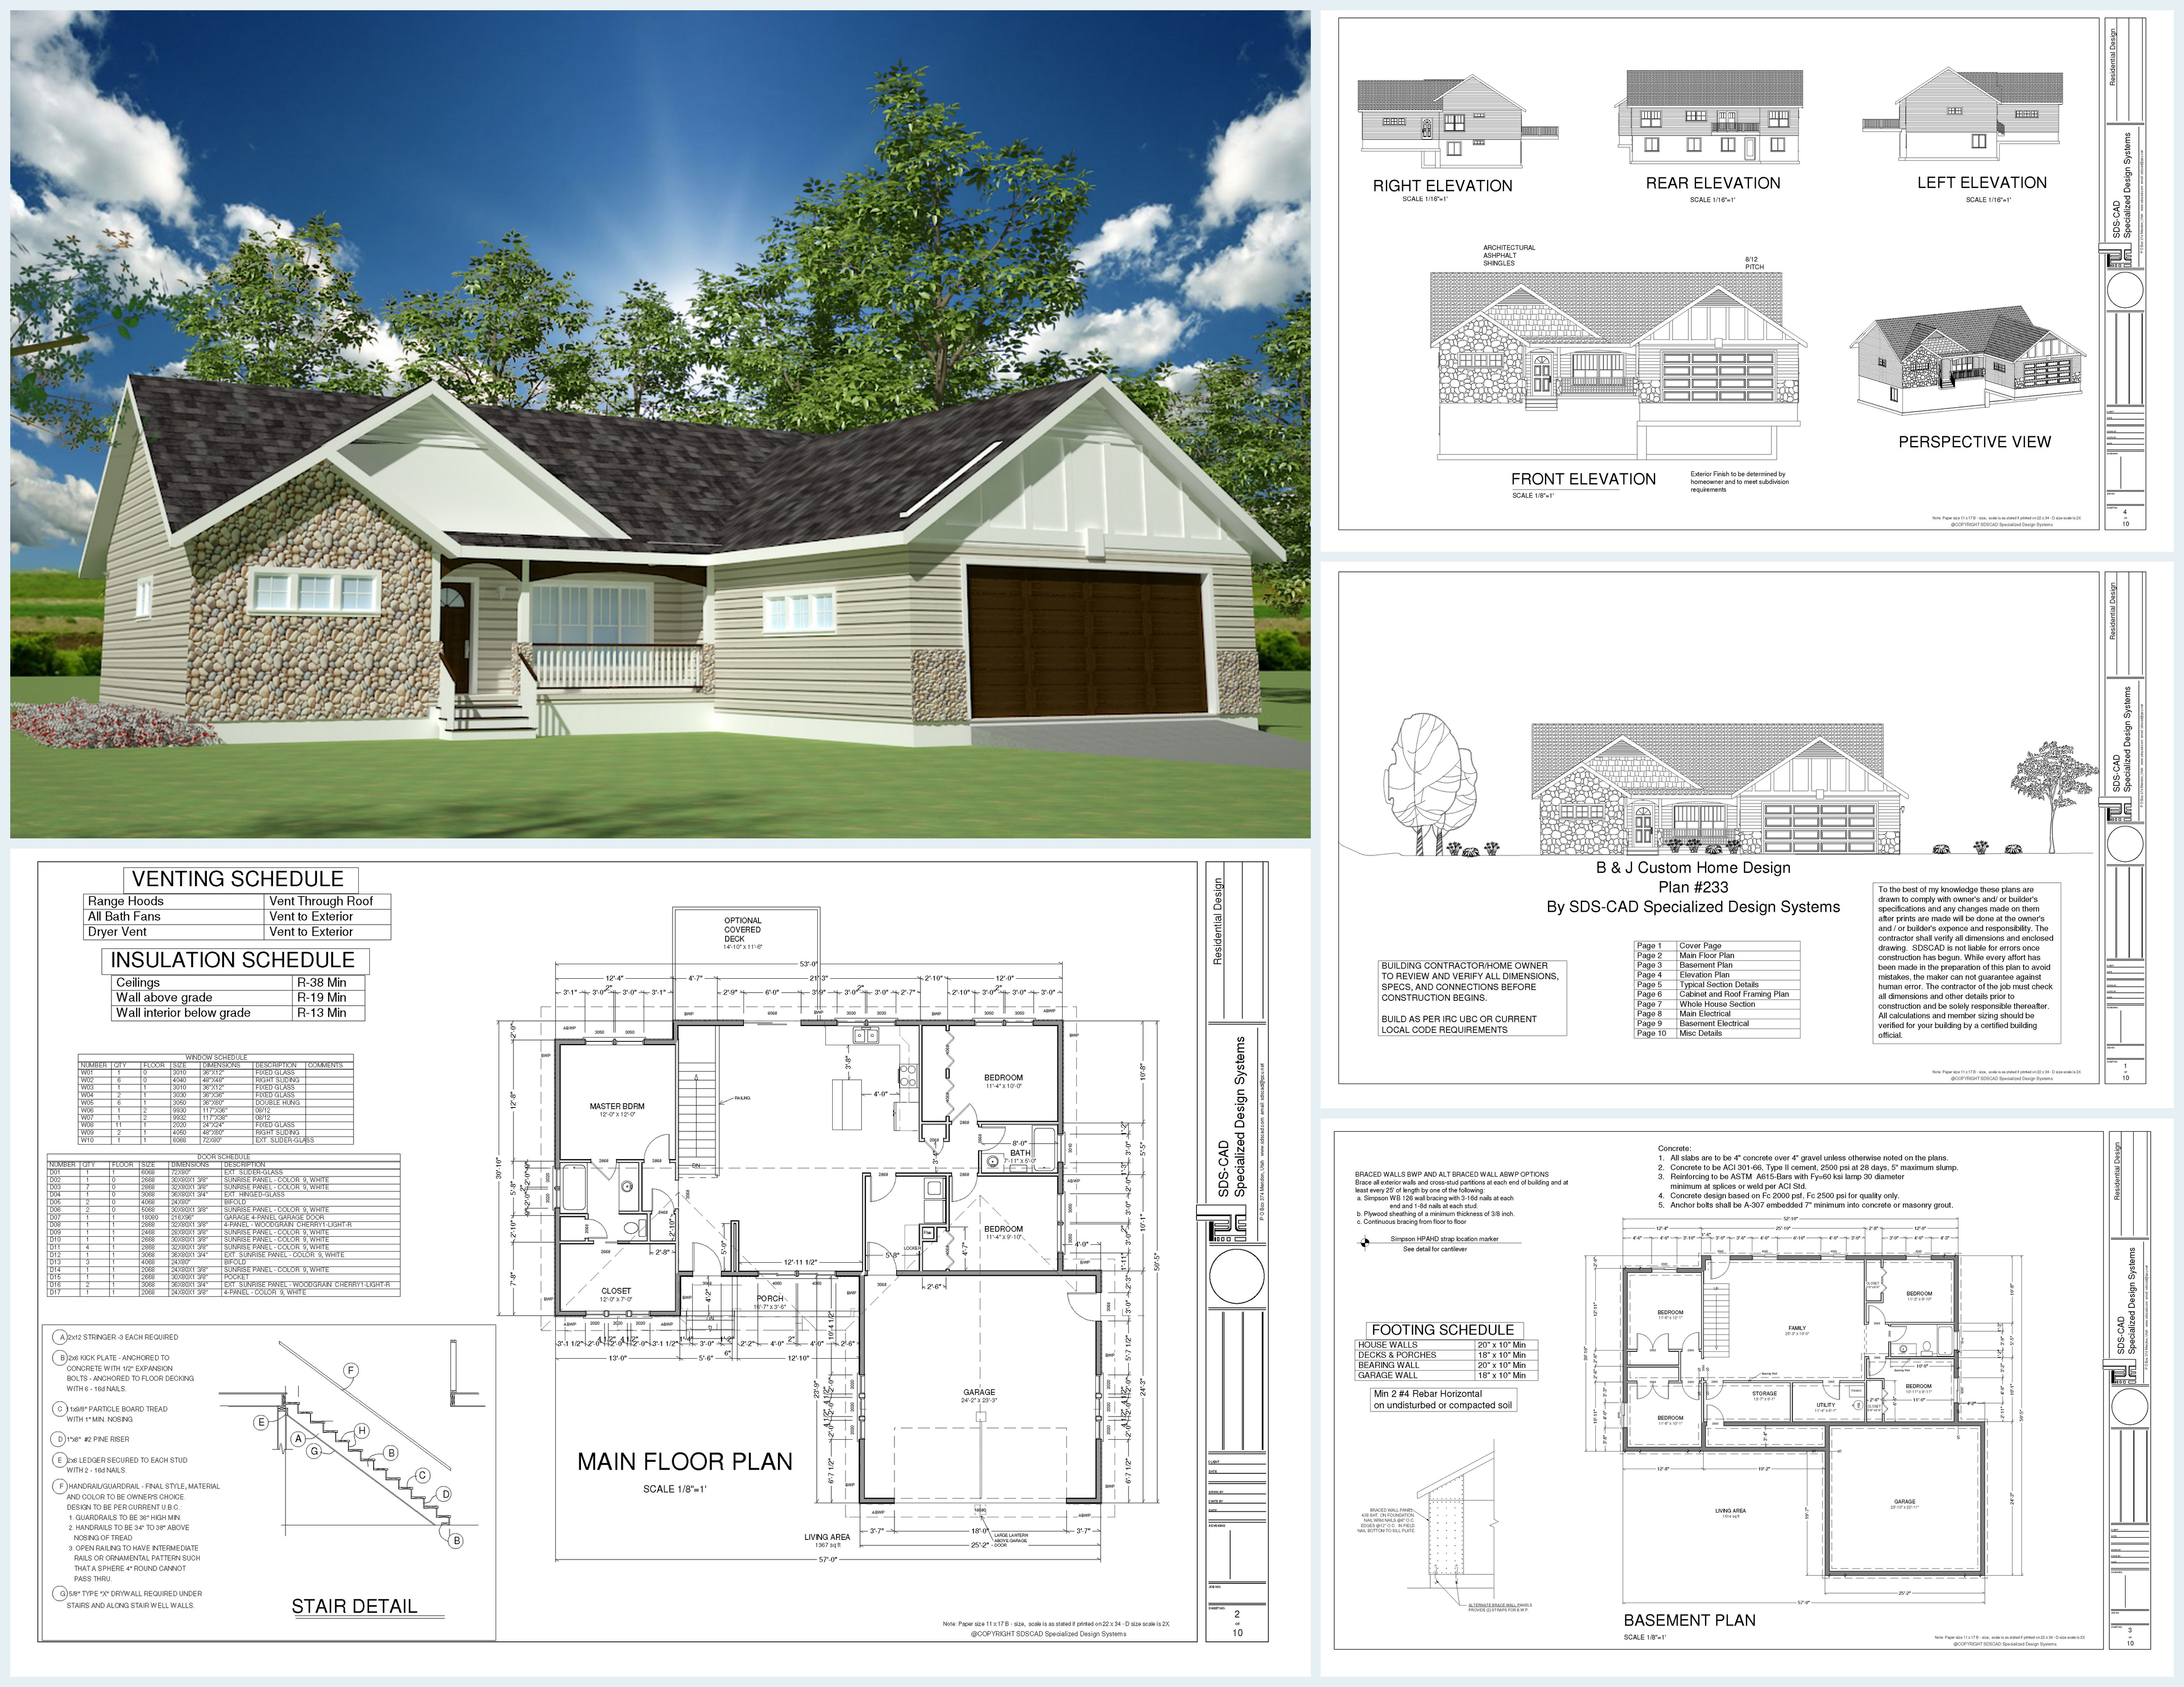 H233 1367 sq ft custom spec house plans in both pdf and Planning a house